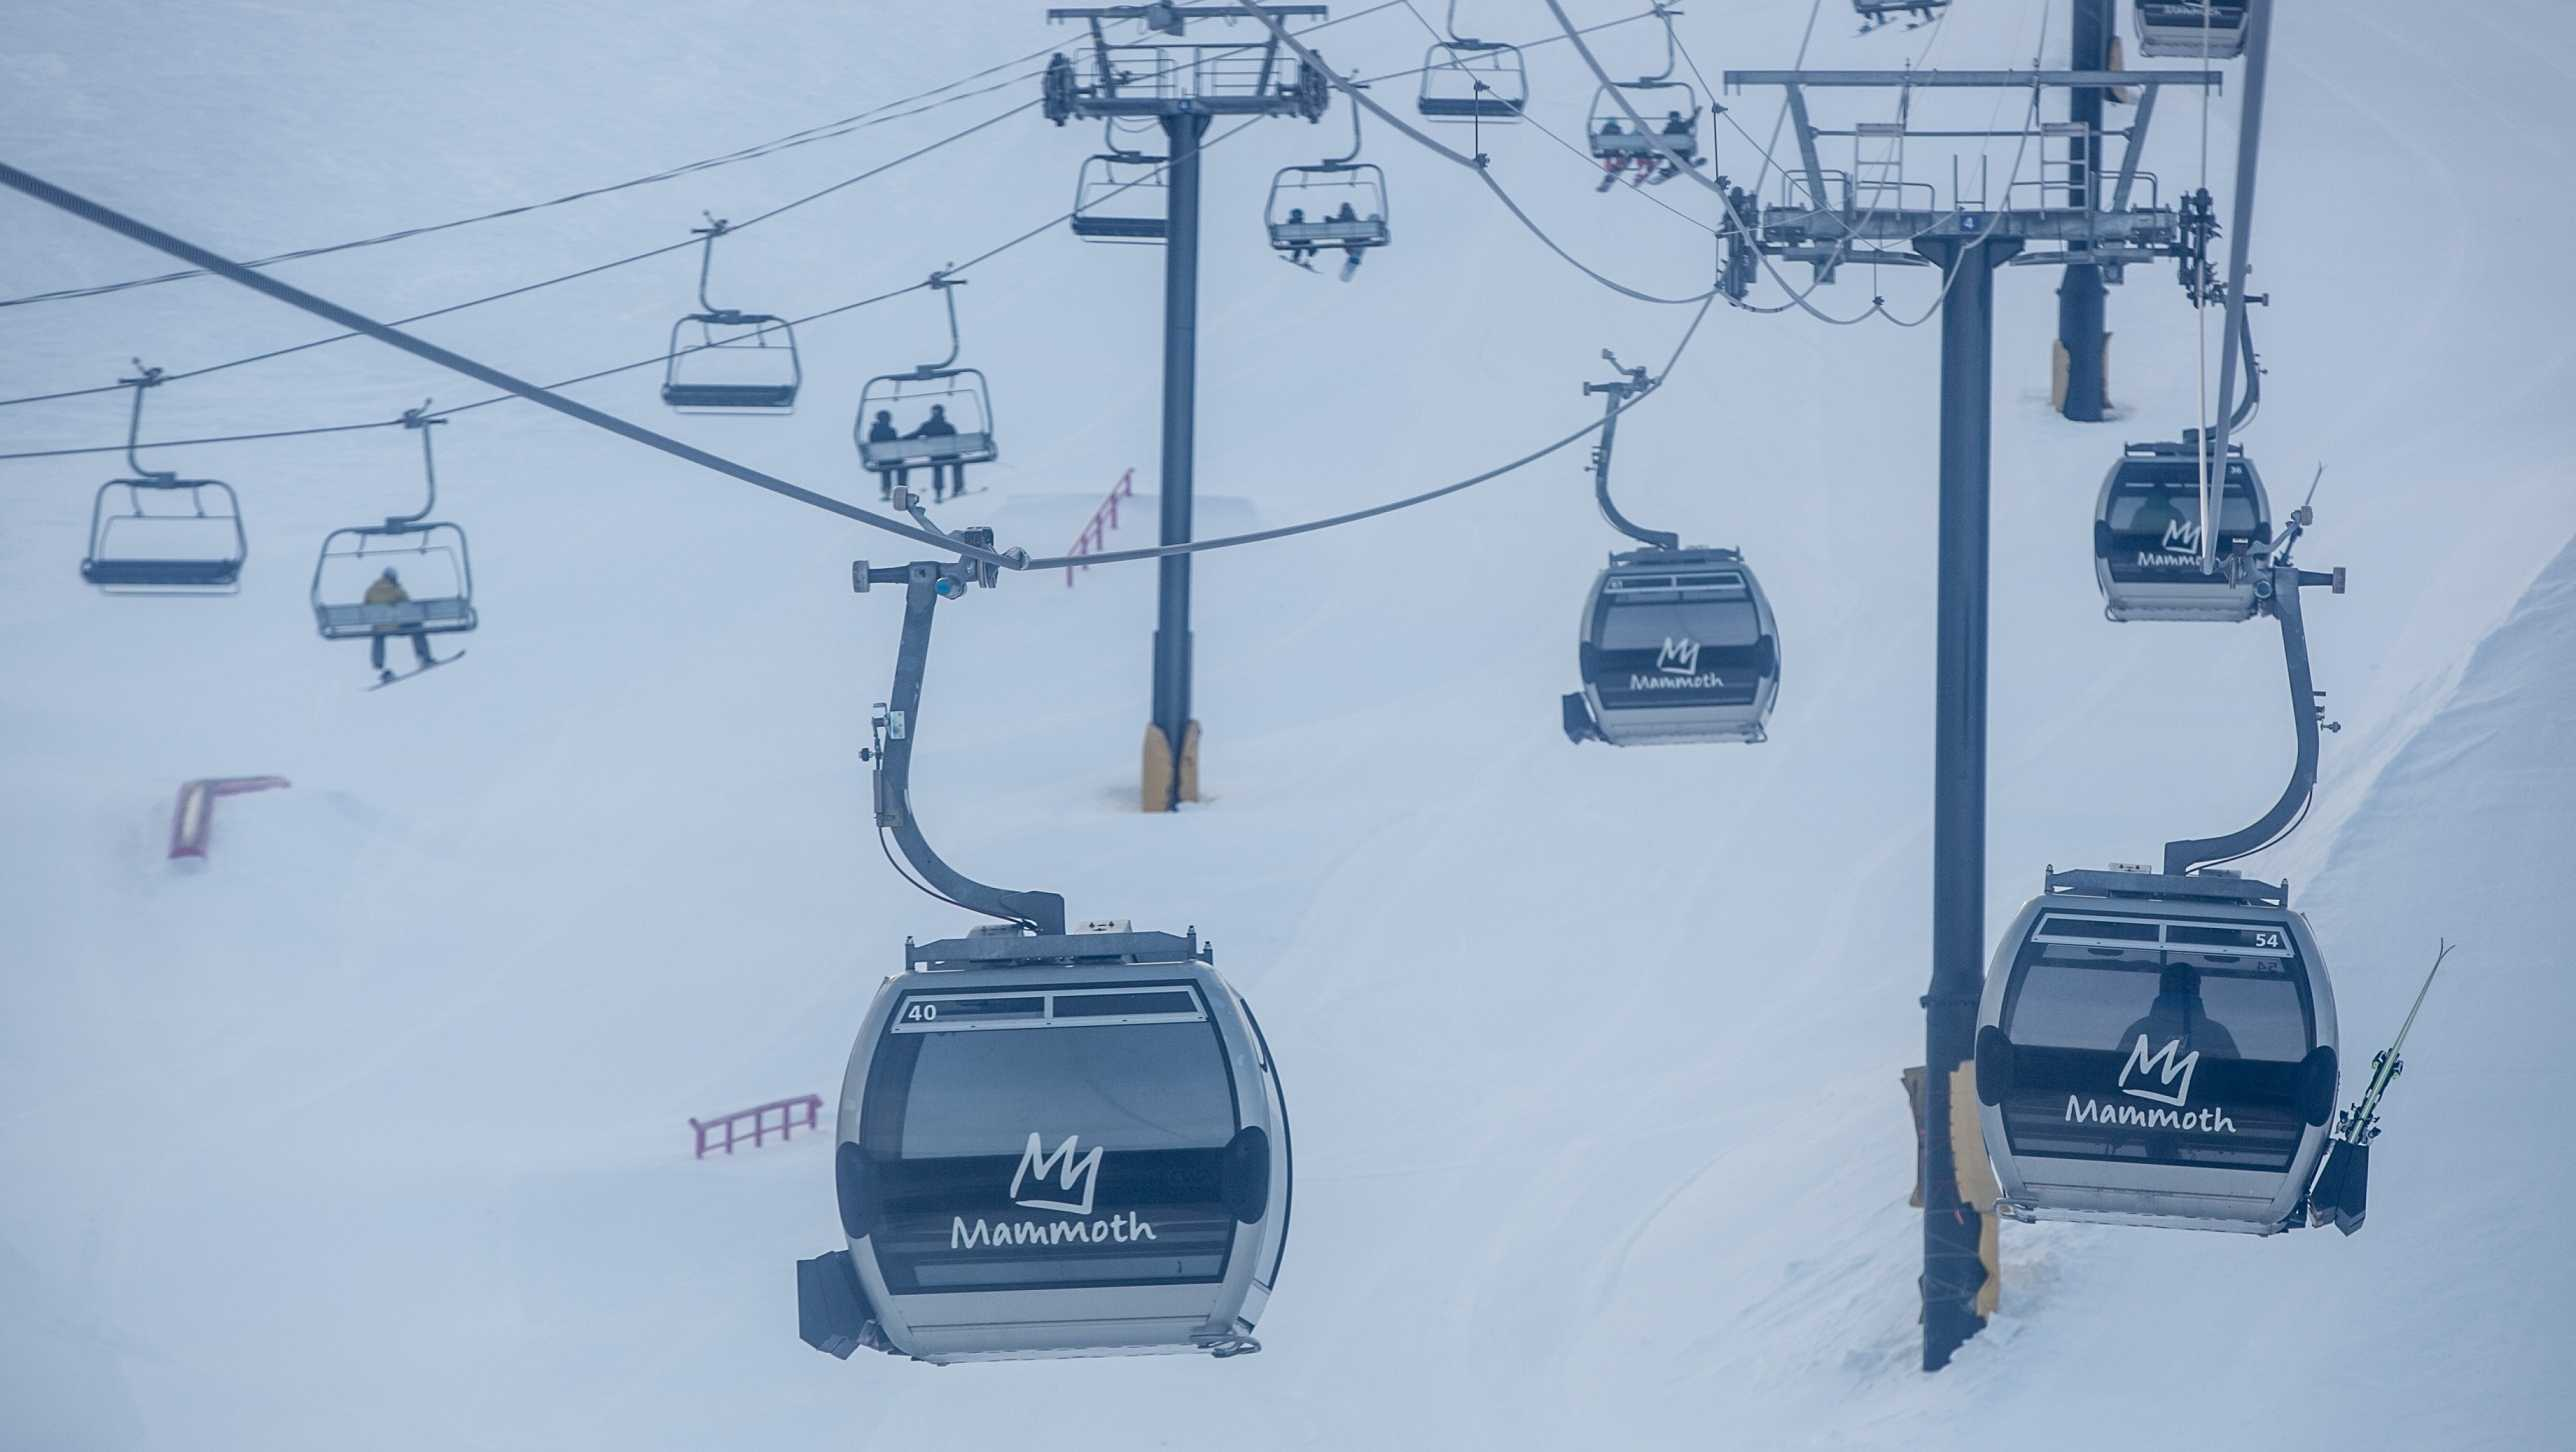 Skiers and snowboarders at Mammoth Mountain ski resort head to the top of the mountain in a gondola on January 29, 2018. Three people were partially buried but unhurt by an avalanche Saturday at the Southern California ski resort.